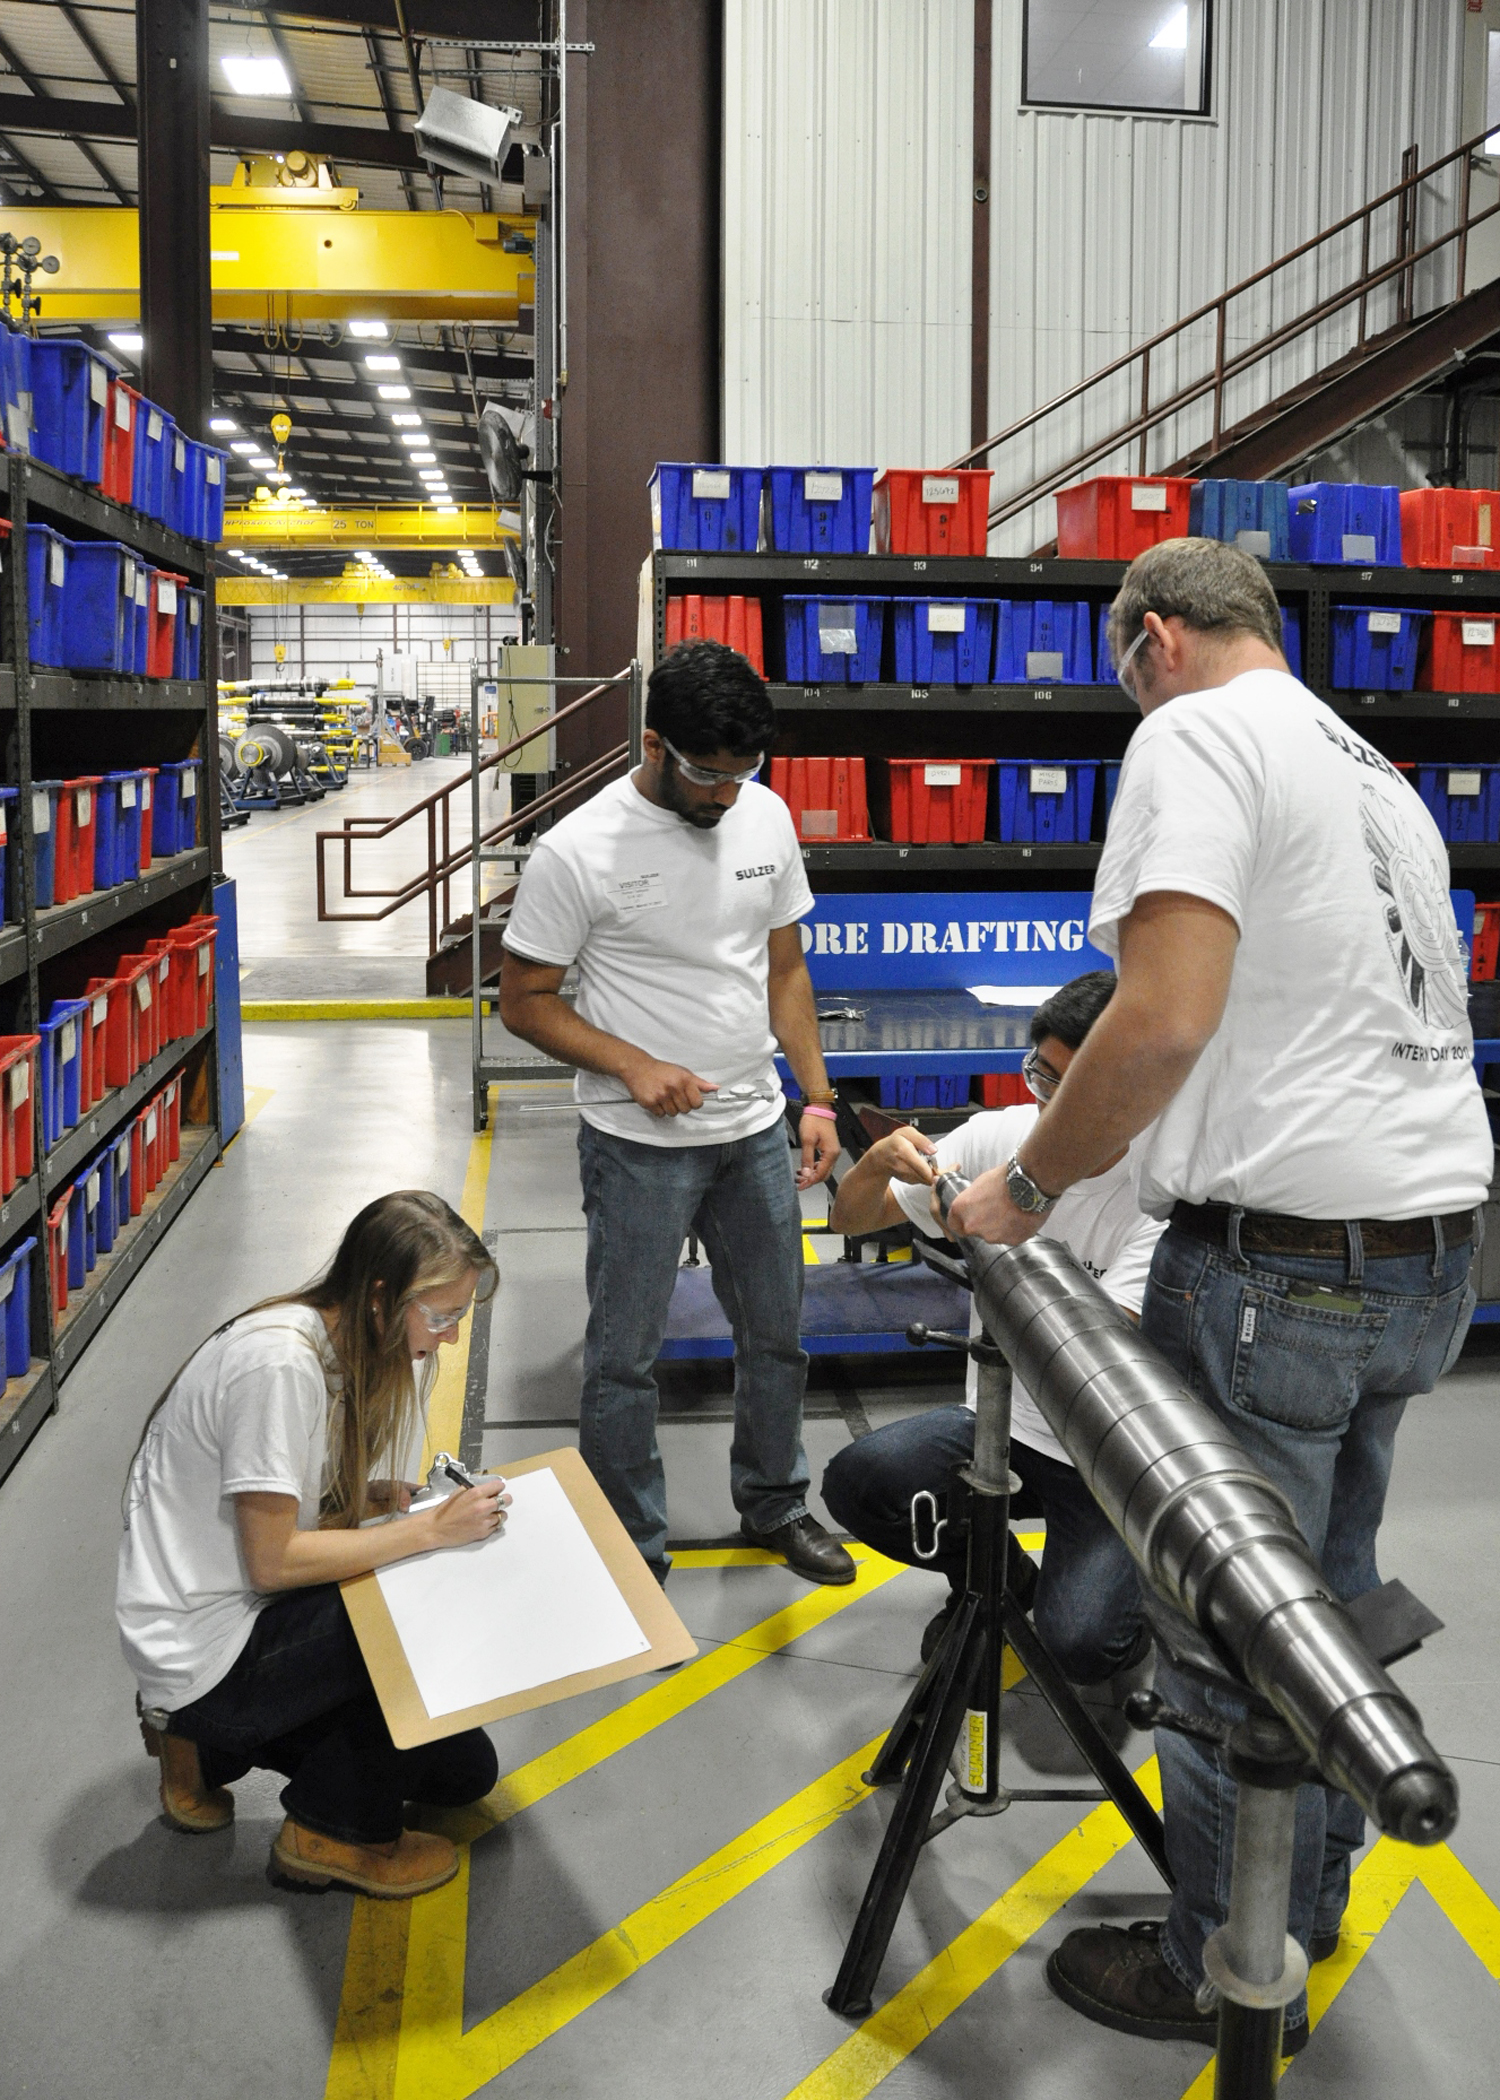 Sulzer finds the newest engineering talent with summer intern program